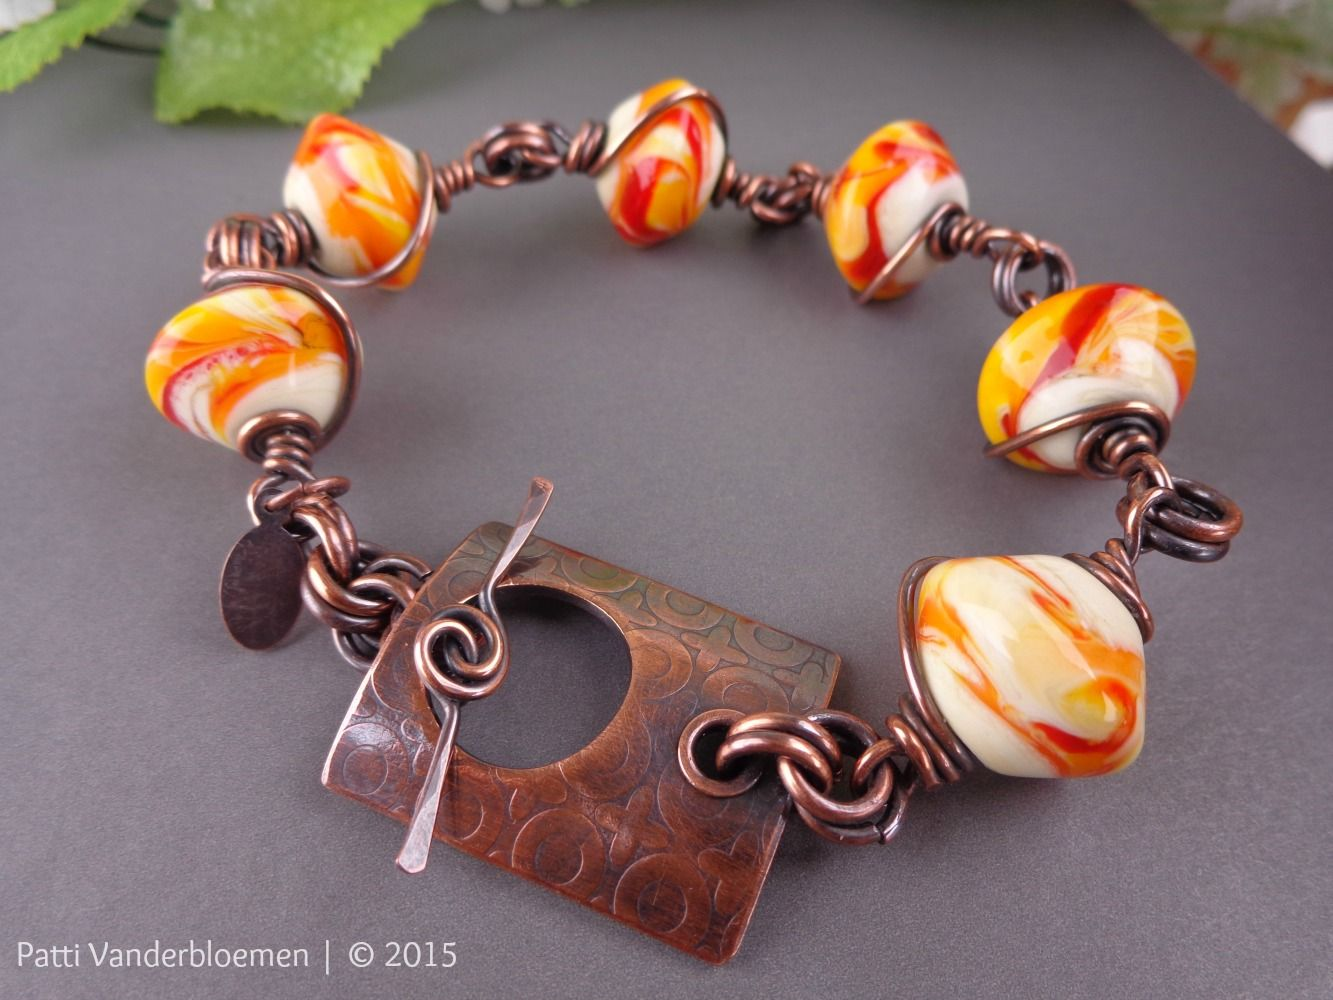 Fire - Artisan Glass and Solid Copper Bracelet   Handcrafted Jewelry by Patti Vanderbloemen